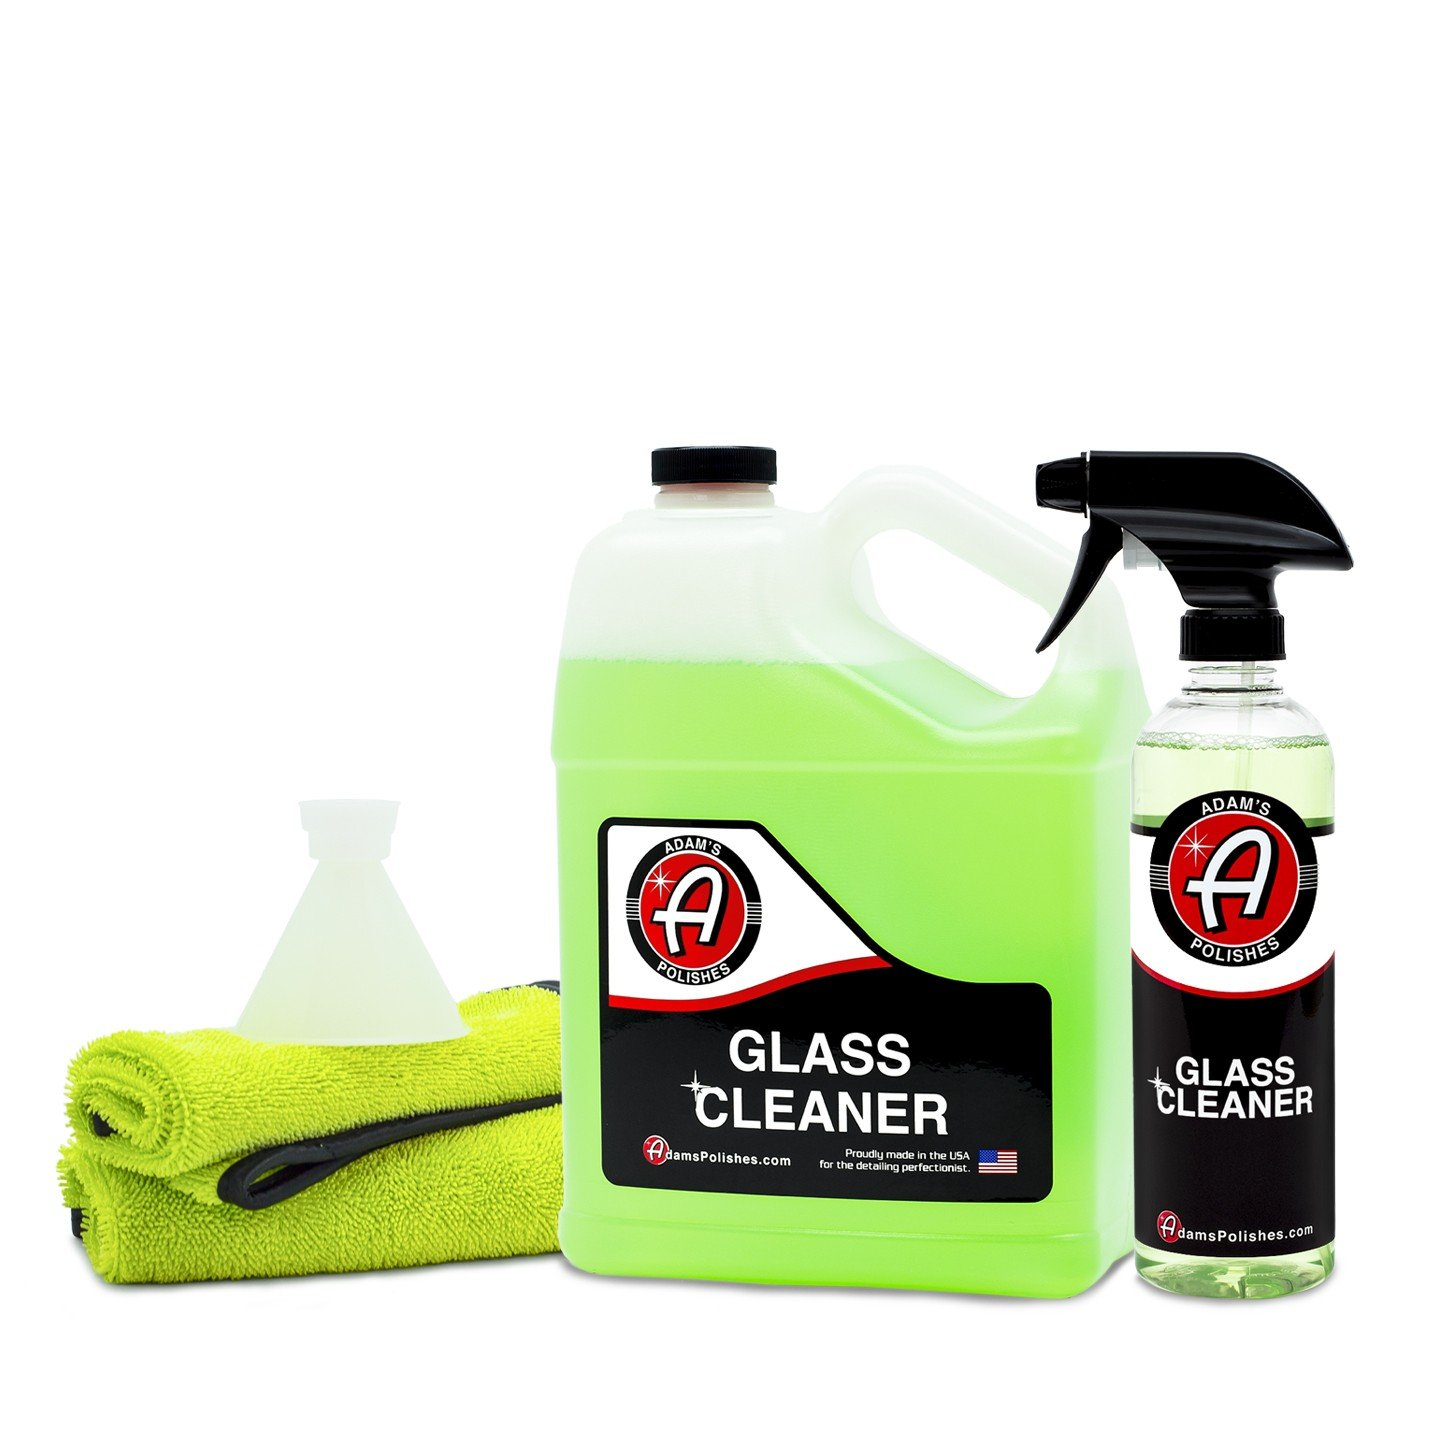 Adam's New Glass Cleaner - Streak Free Glass Cleaning - Optical Clarifiers Keep Glass Clear for Improved Visibility - Safe for Tinted Windows (Collection)